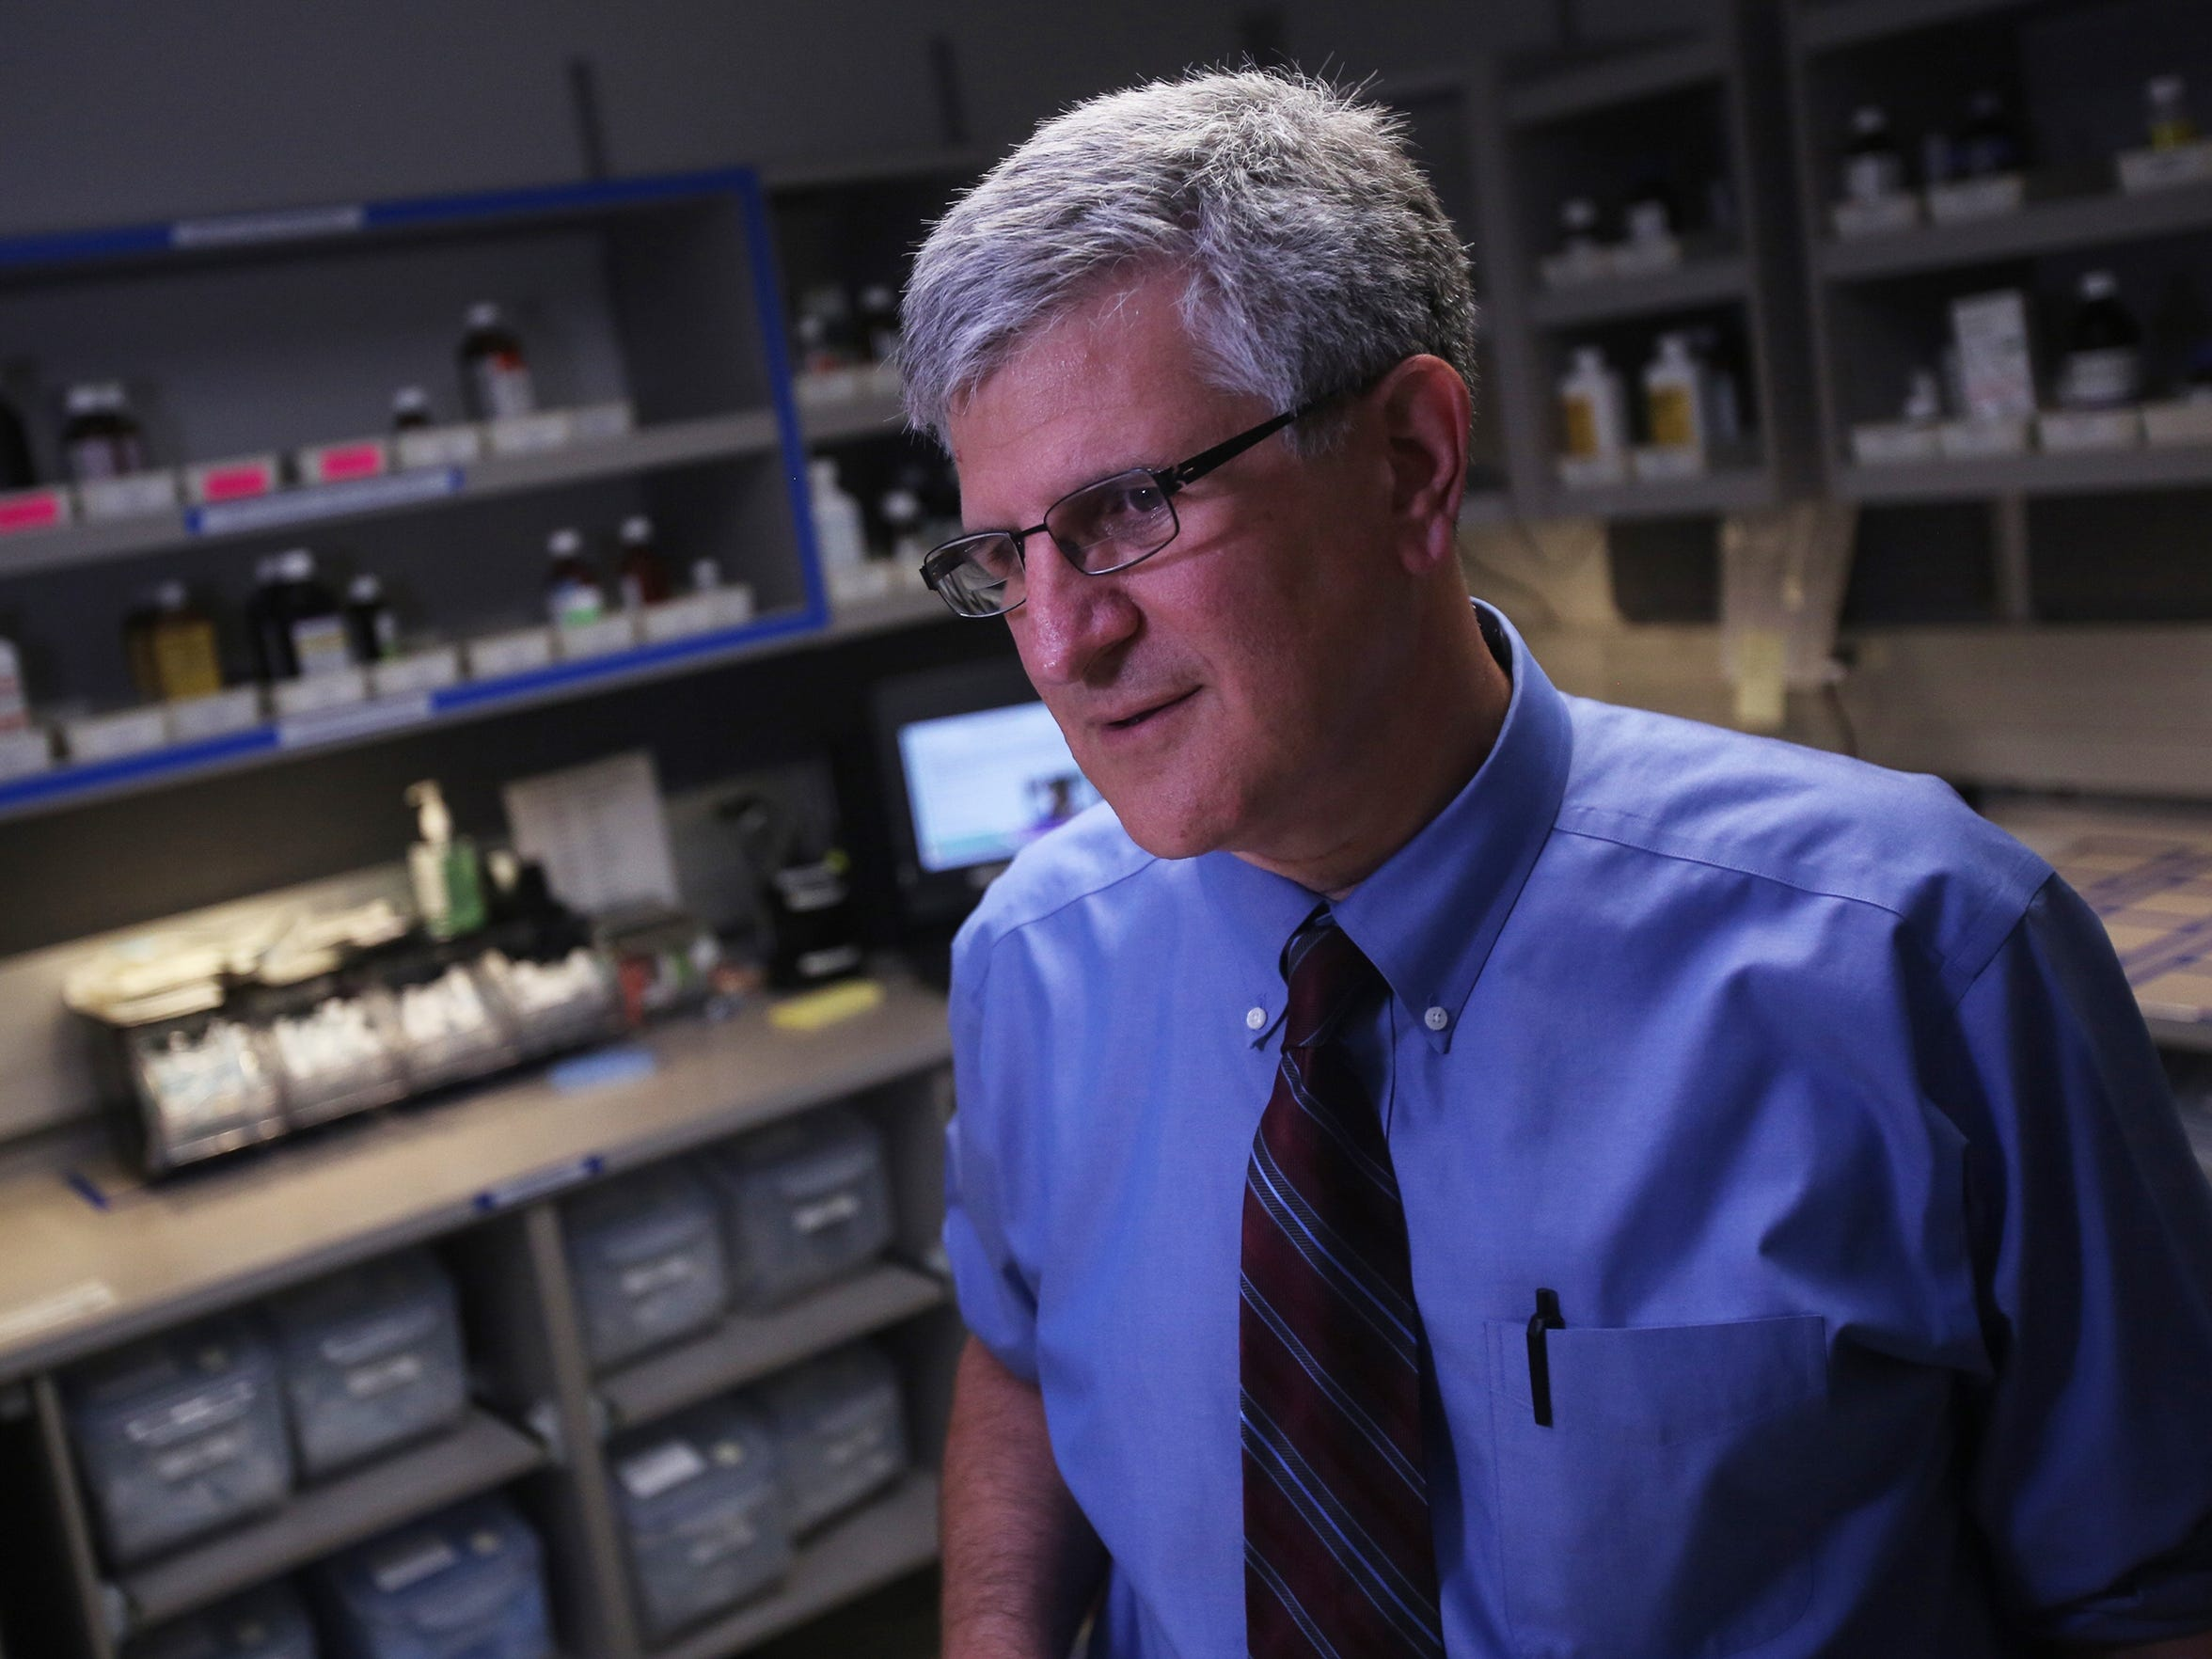 Dr. Paul Offit, chief division of infectious disease at Children's Hospital of Philadelphia and inventor of a rotavirus vaccine.